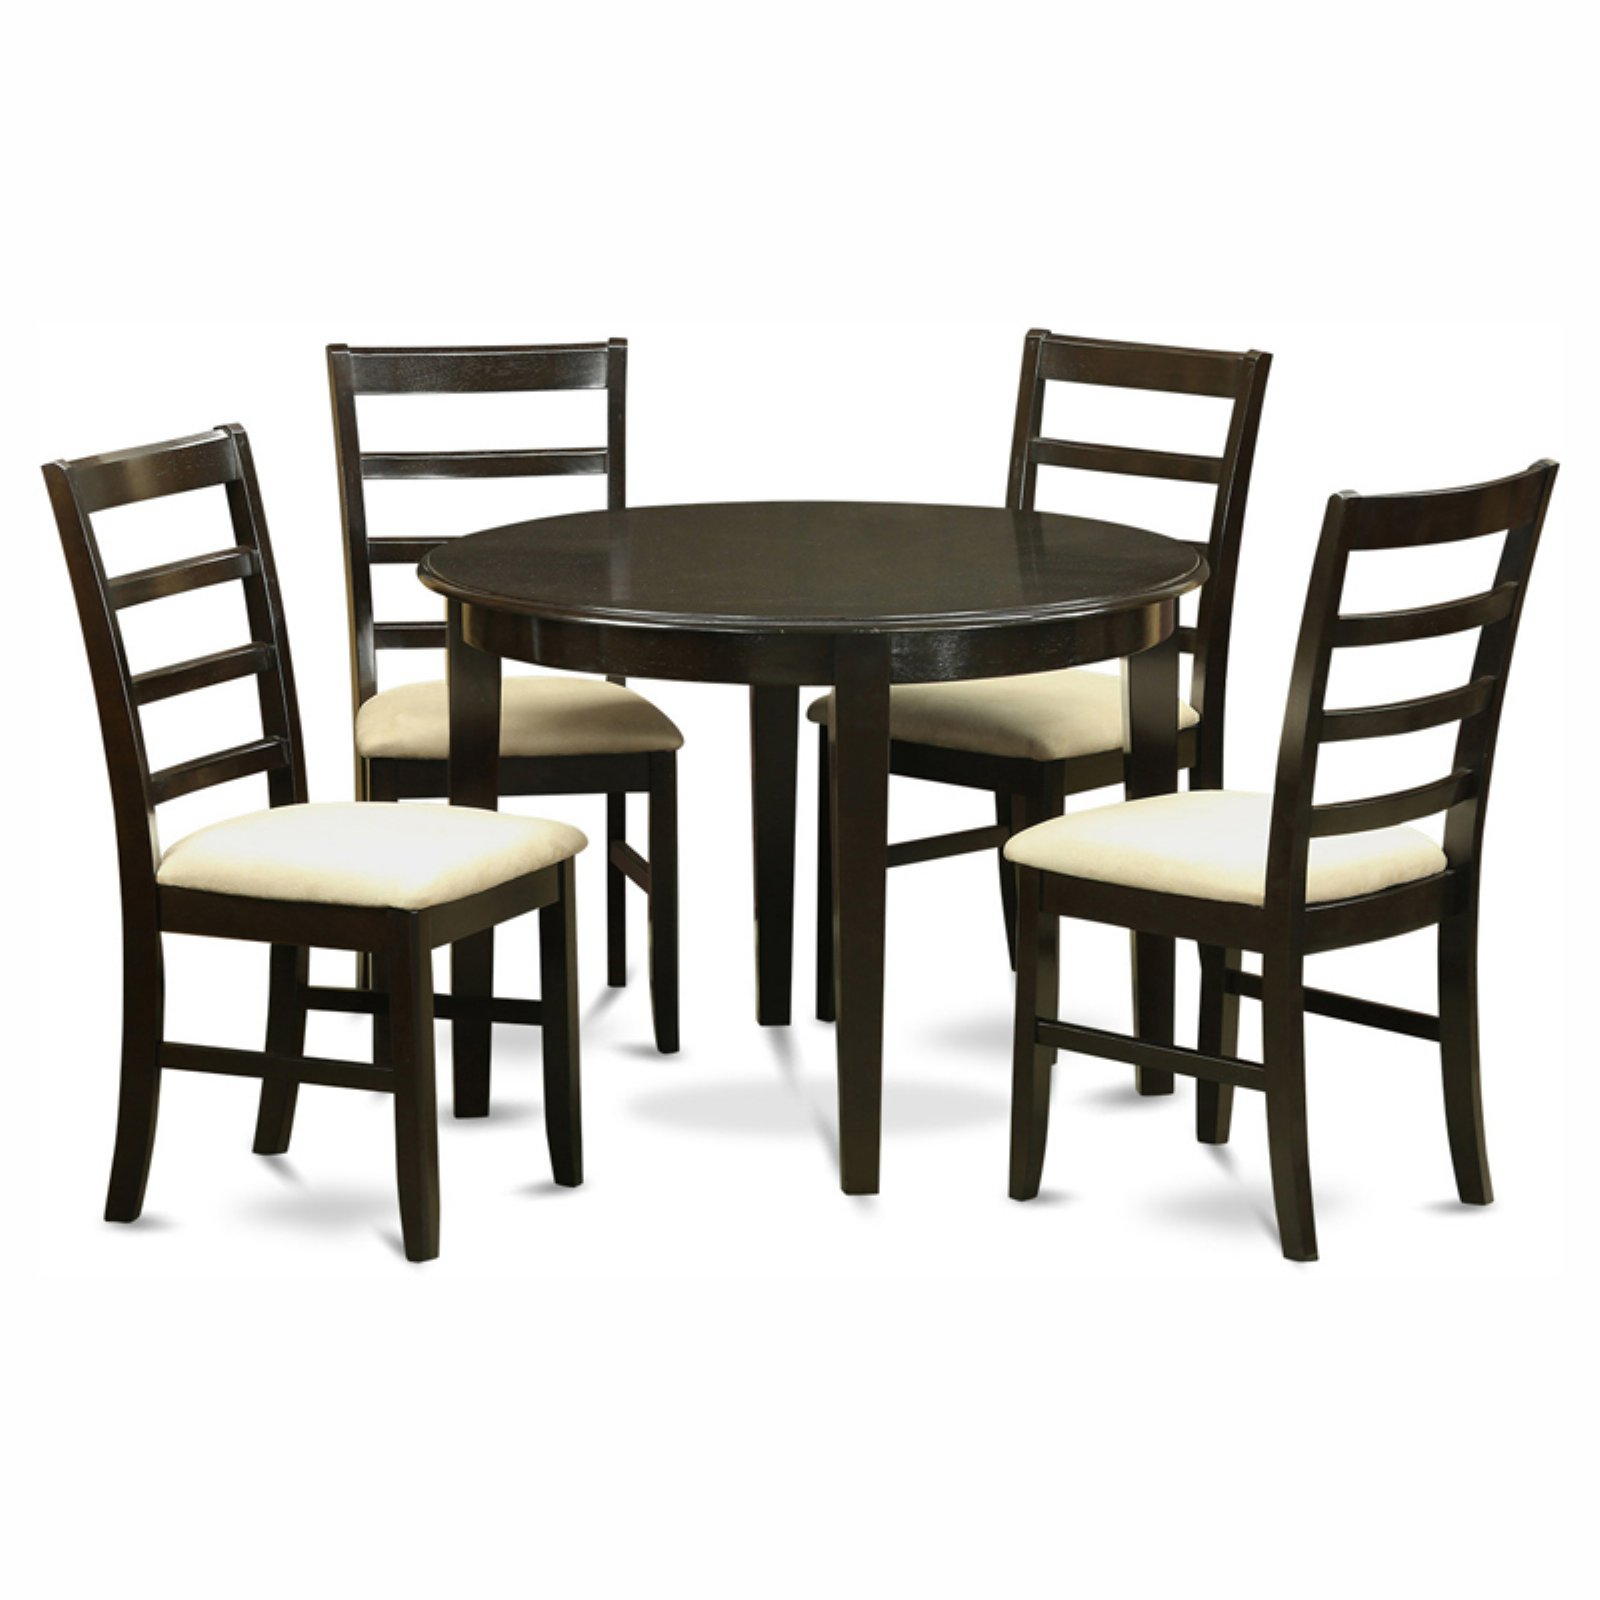 East West Furniture Boston 5 Piece Round Dining Table Set with Parfait Microfiber Seat Chairs